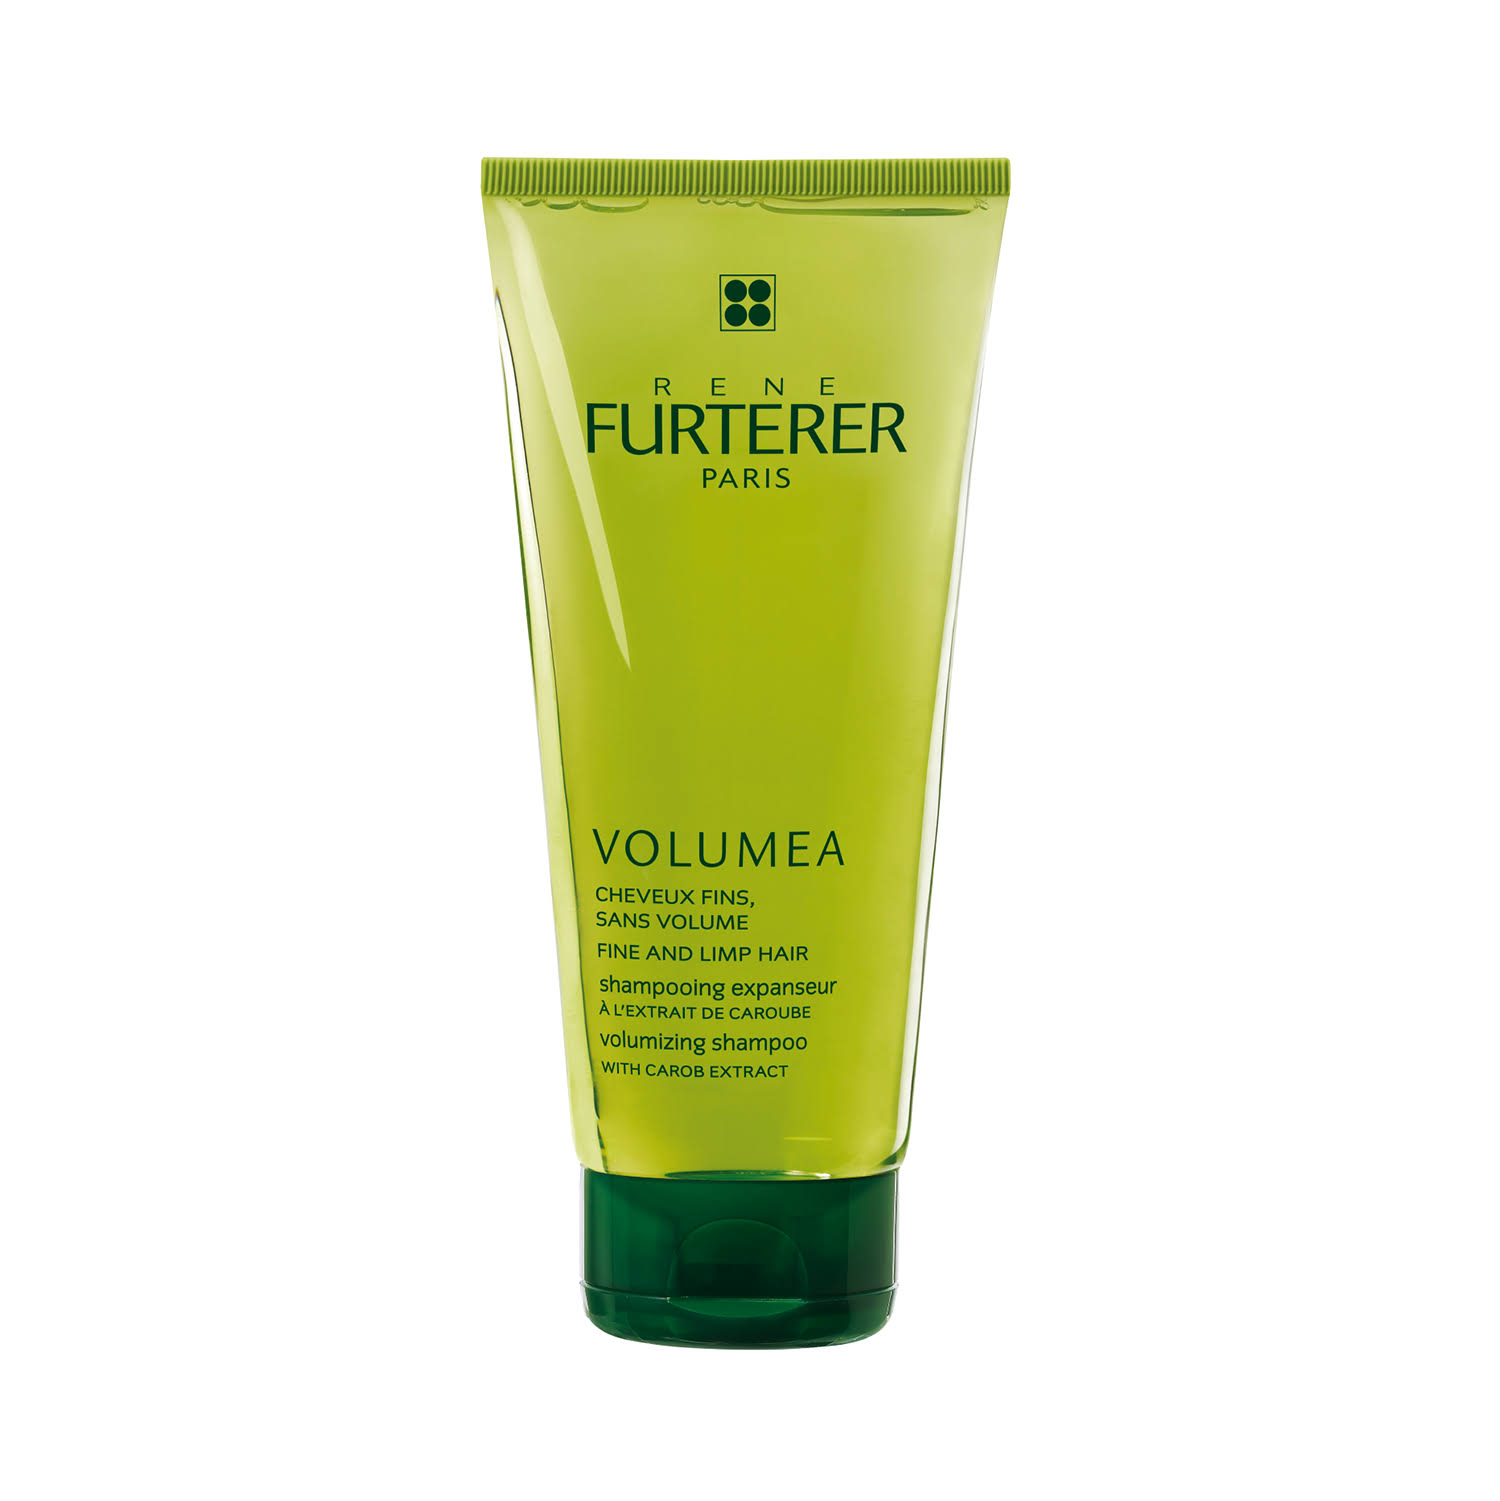 Furterer Volumea Volumizing Shampoo - 200ml